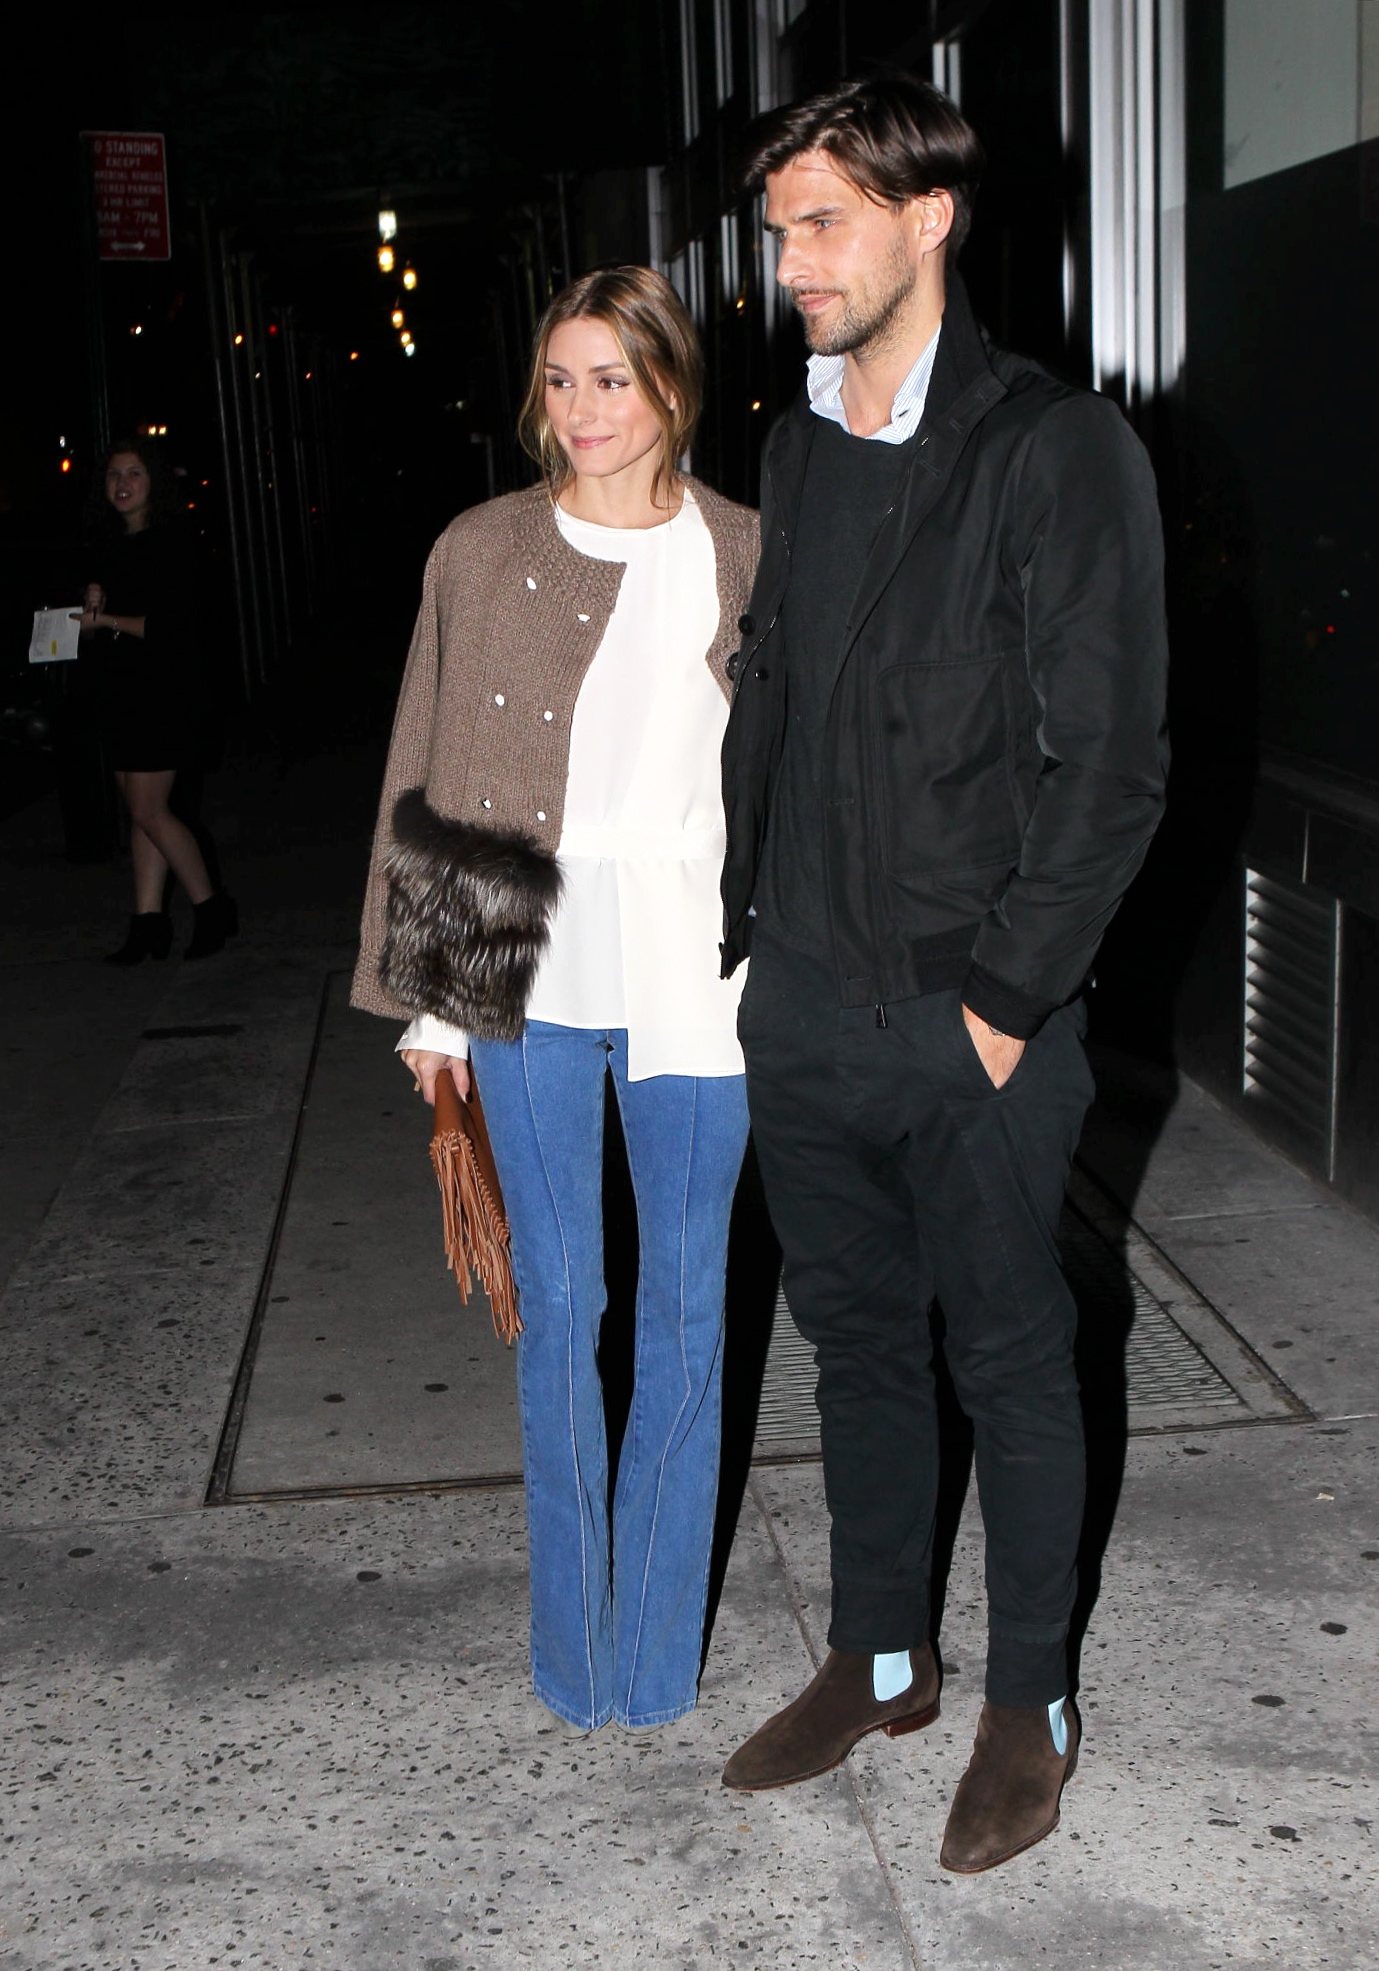 Reality star and fashion icon, Olivia Palermo, was spotted in NYC, wearing pale blue jeans, a white top and a earth-toned jacket, with her hubby, Johannes Huebl, on Wednesday, November 12, 2014 X17online.com